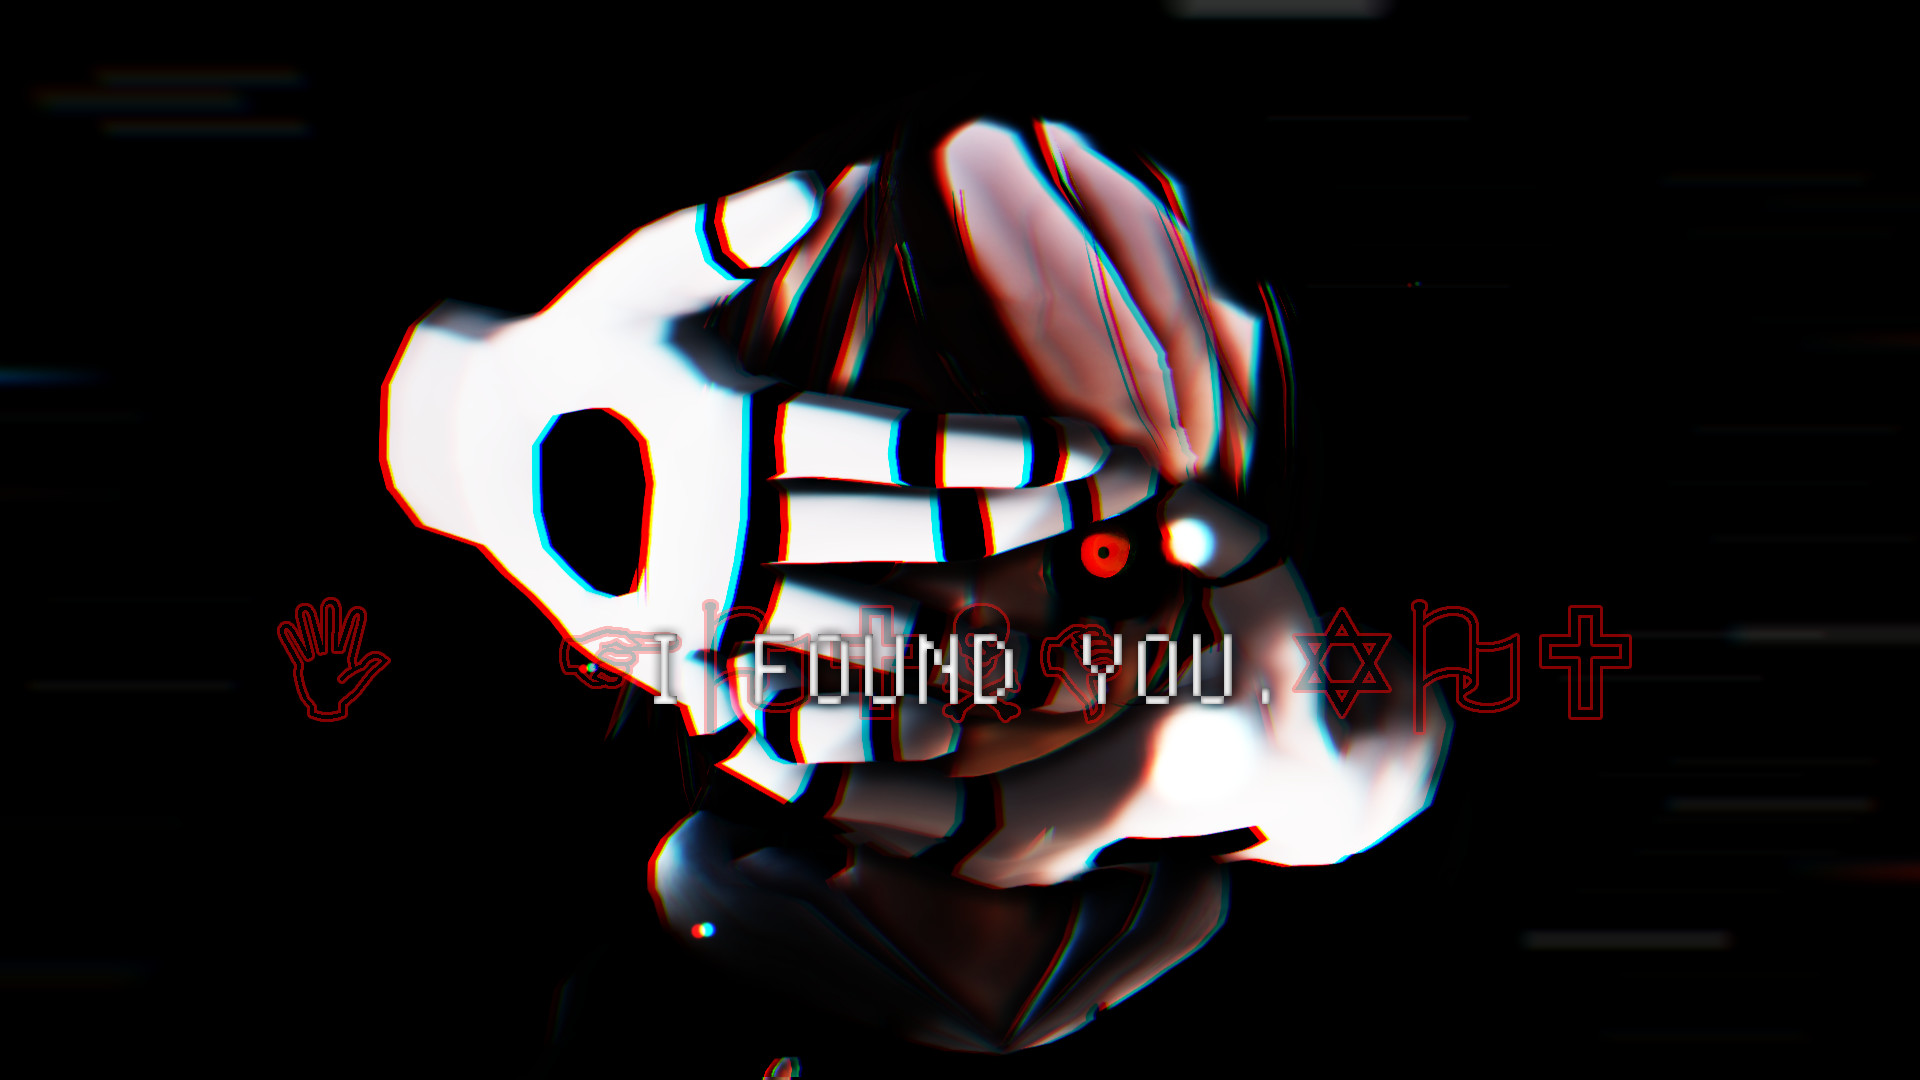 I FOUND YOU ( UNDERTALE) W.D GASTER and Mi' by Cirthiel on .